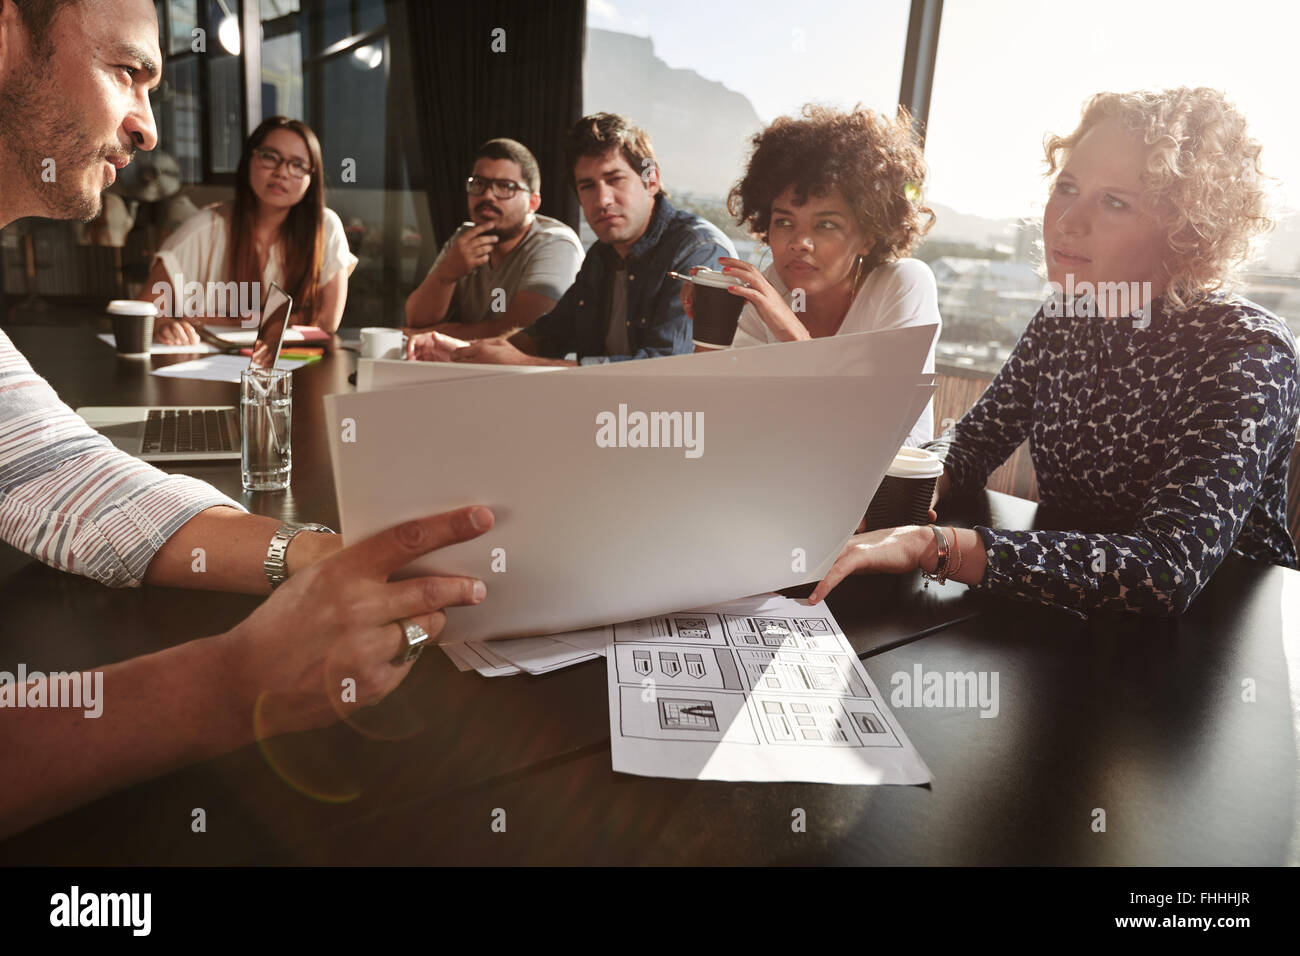 Closeup shot of team of young people going over paperwork. Creative people meeting at restaurant table. Focus on - Stock Image